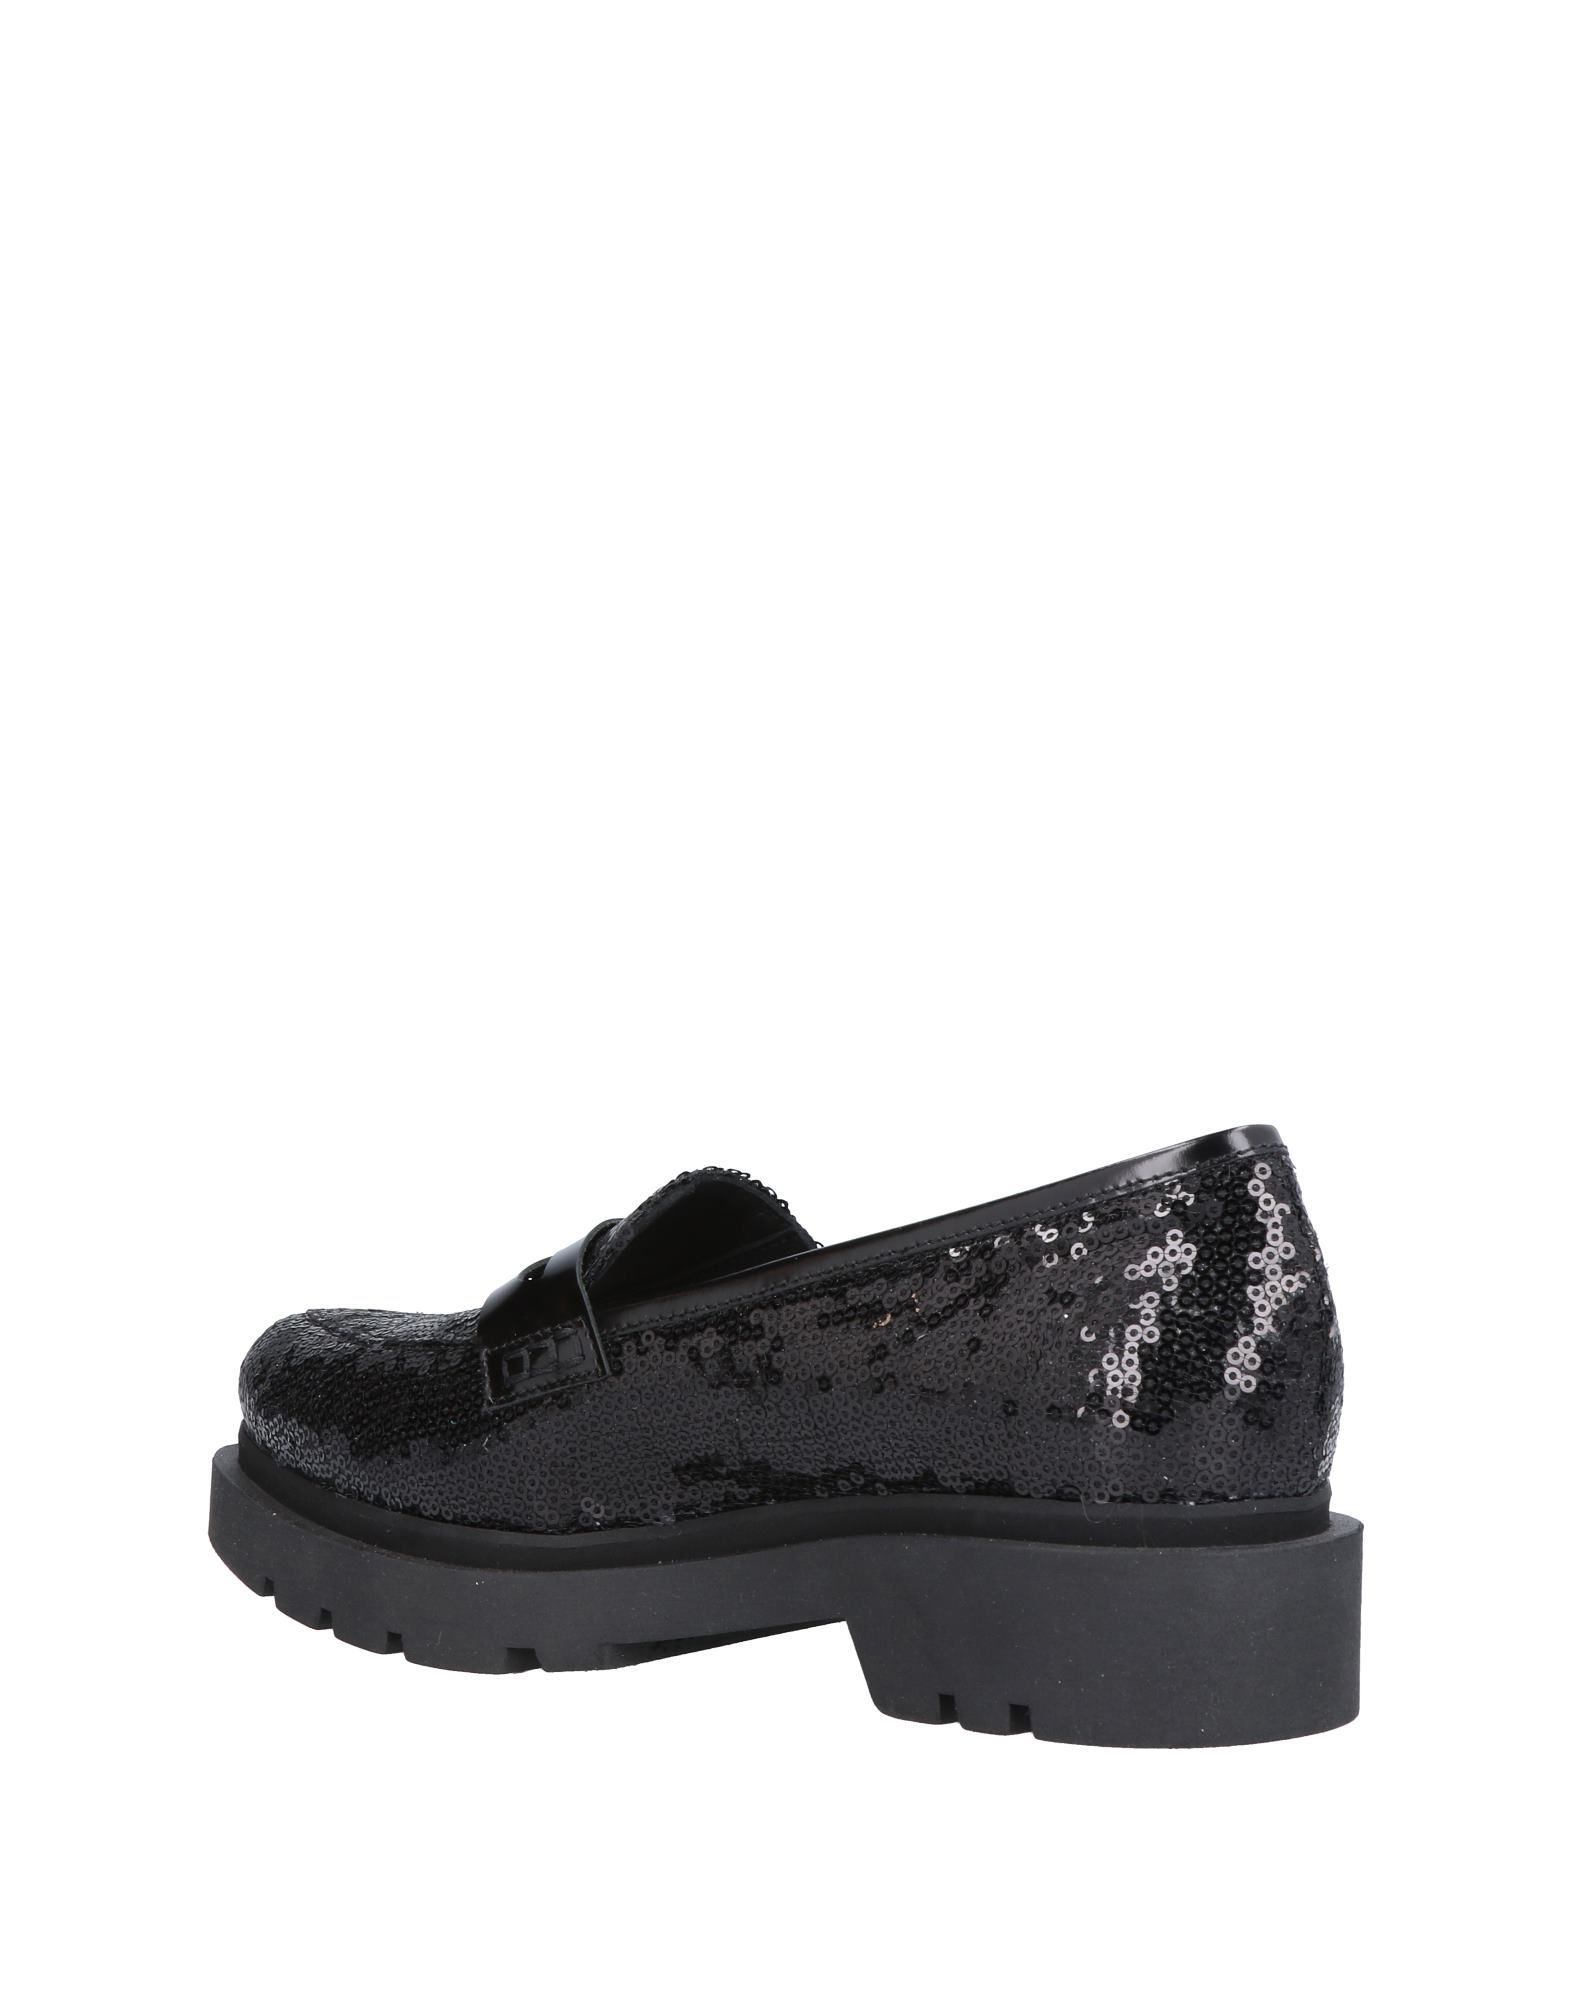 Sgn Giancarlo Paoli Loafers - - - Women Sgn Giancarlo Paoli Loafers online on  United Kingdom - 11487566HR 8b9753